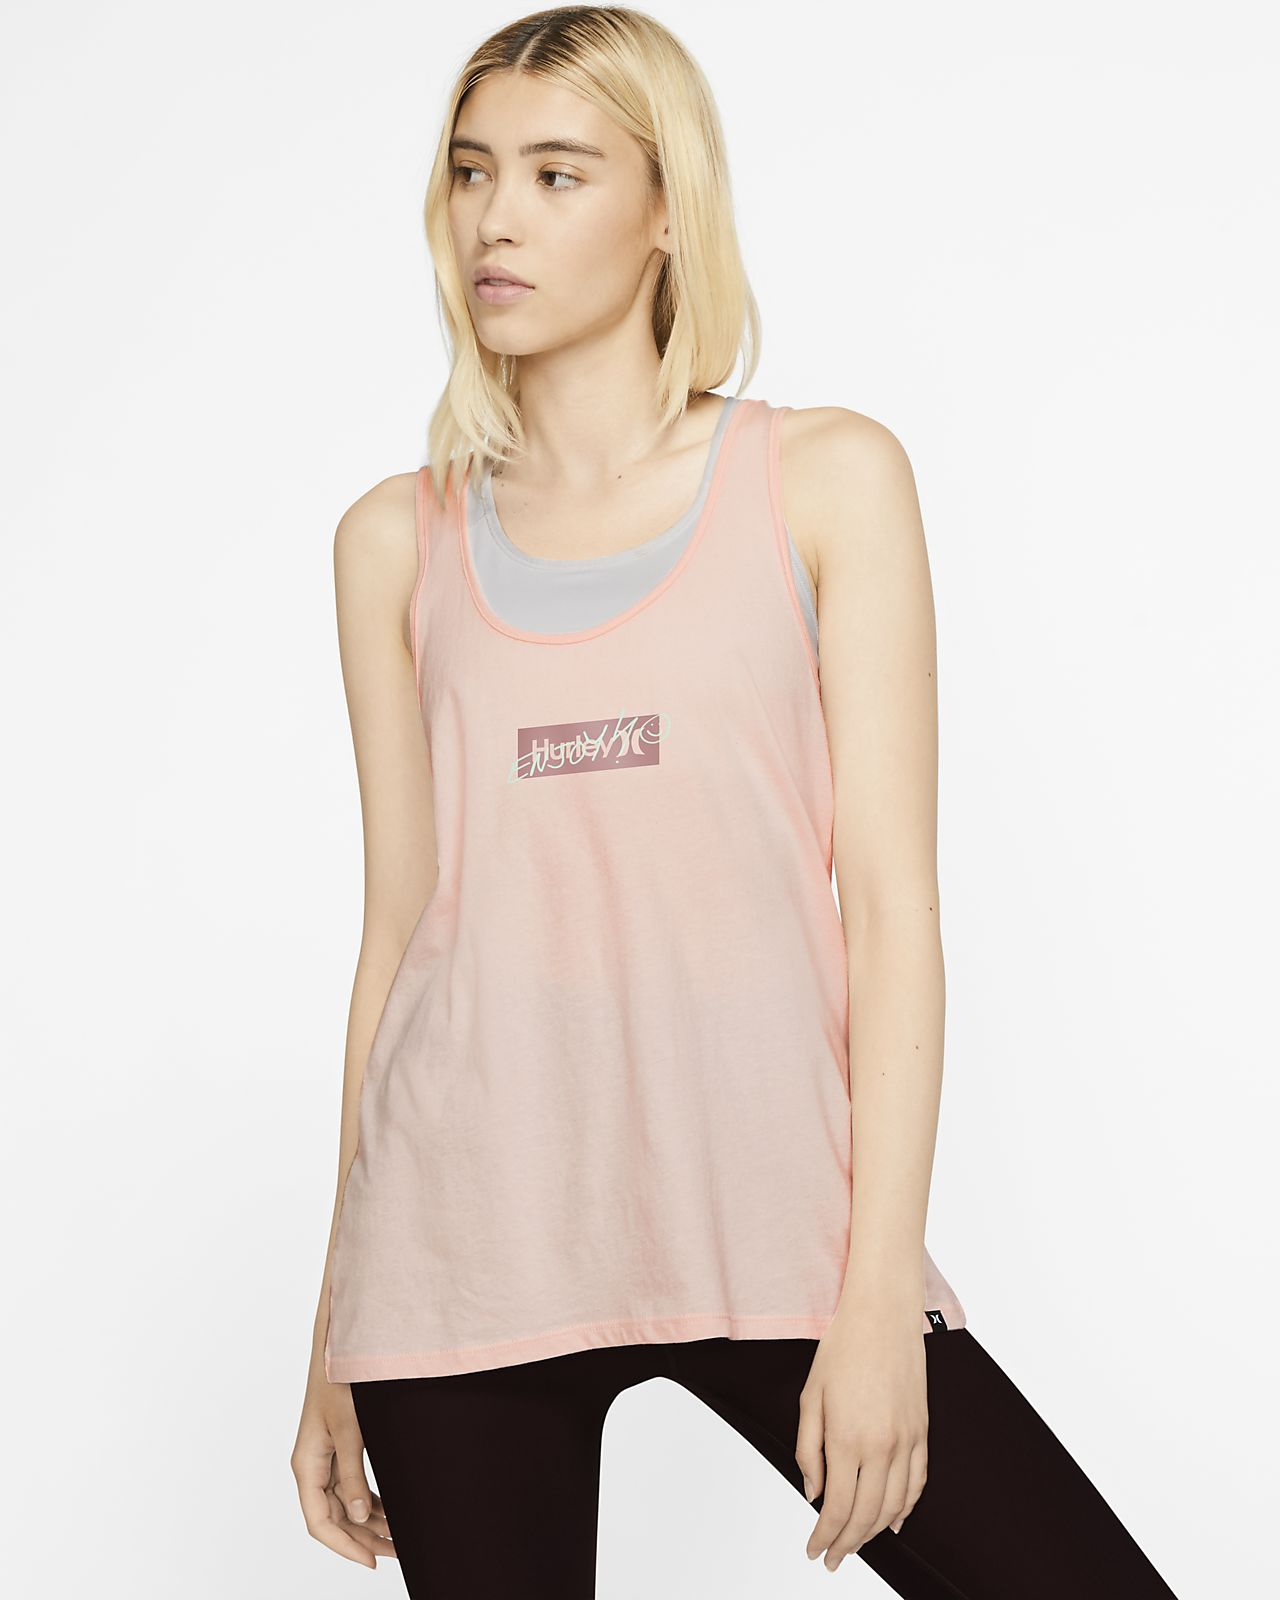 Hurley Enjoy Perfect Women's Tank